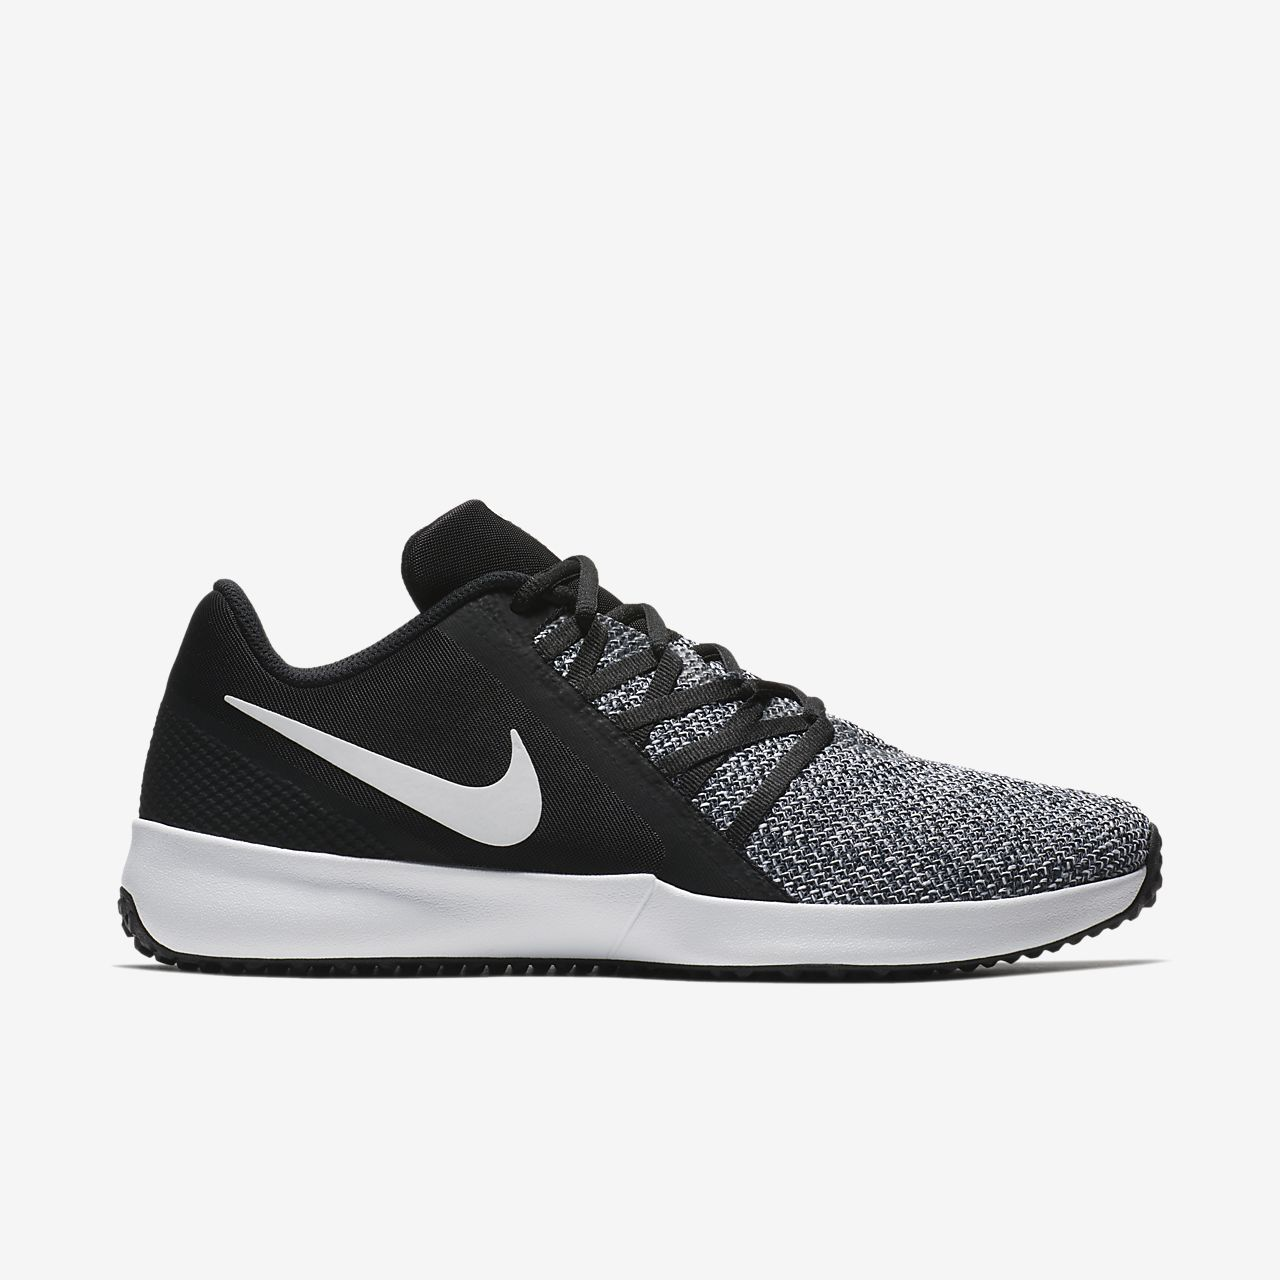 76f85894c9d Nike Varsity Compete Trainer Men s Gym Sport Training Shoe. Nike.com CA